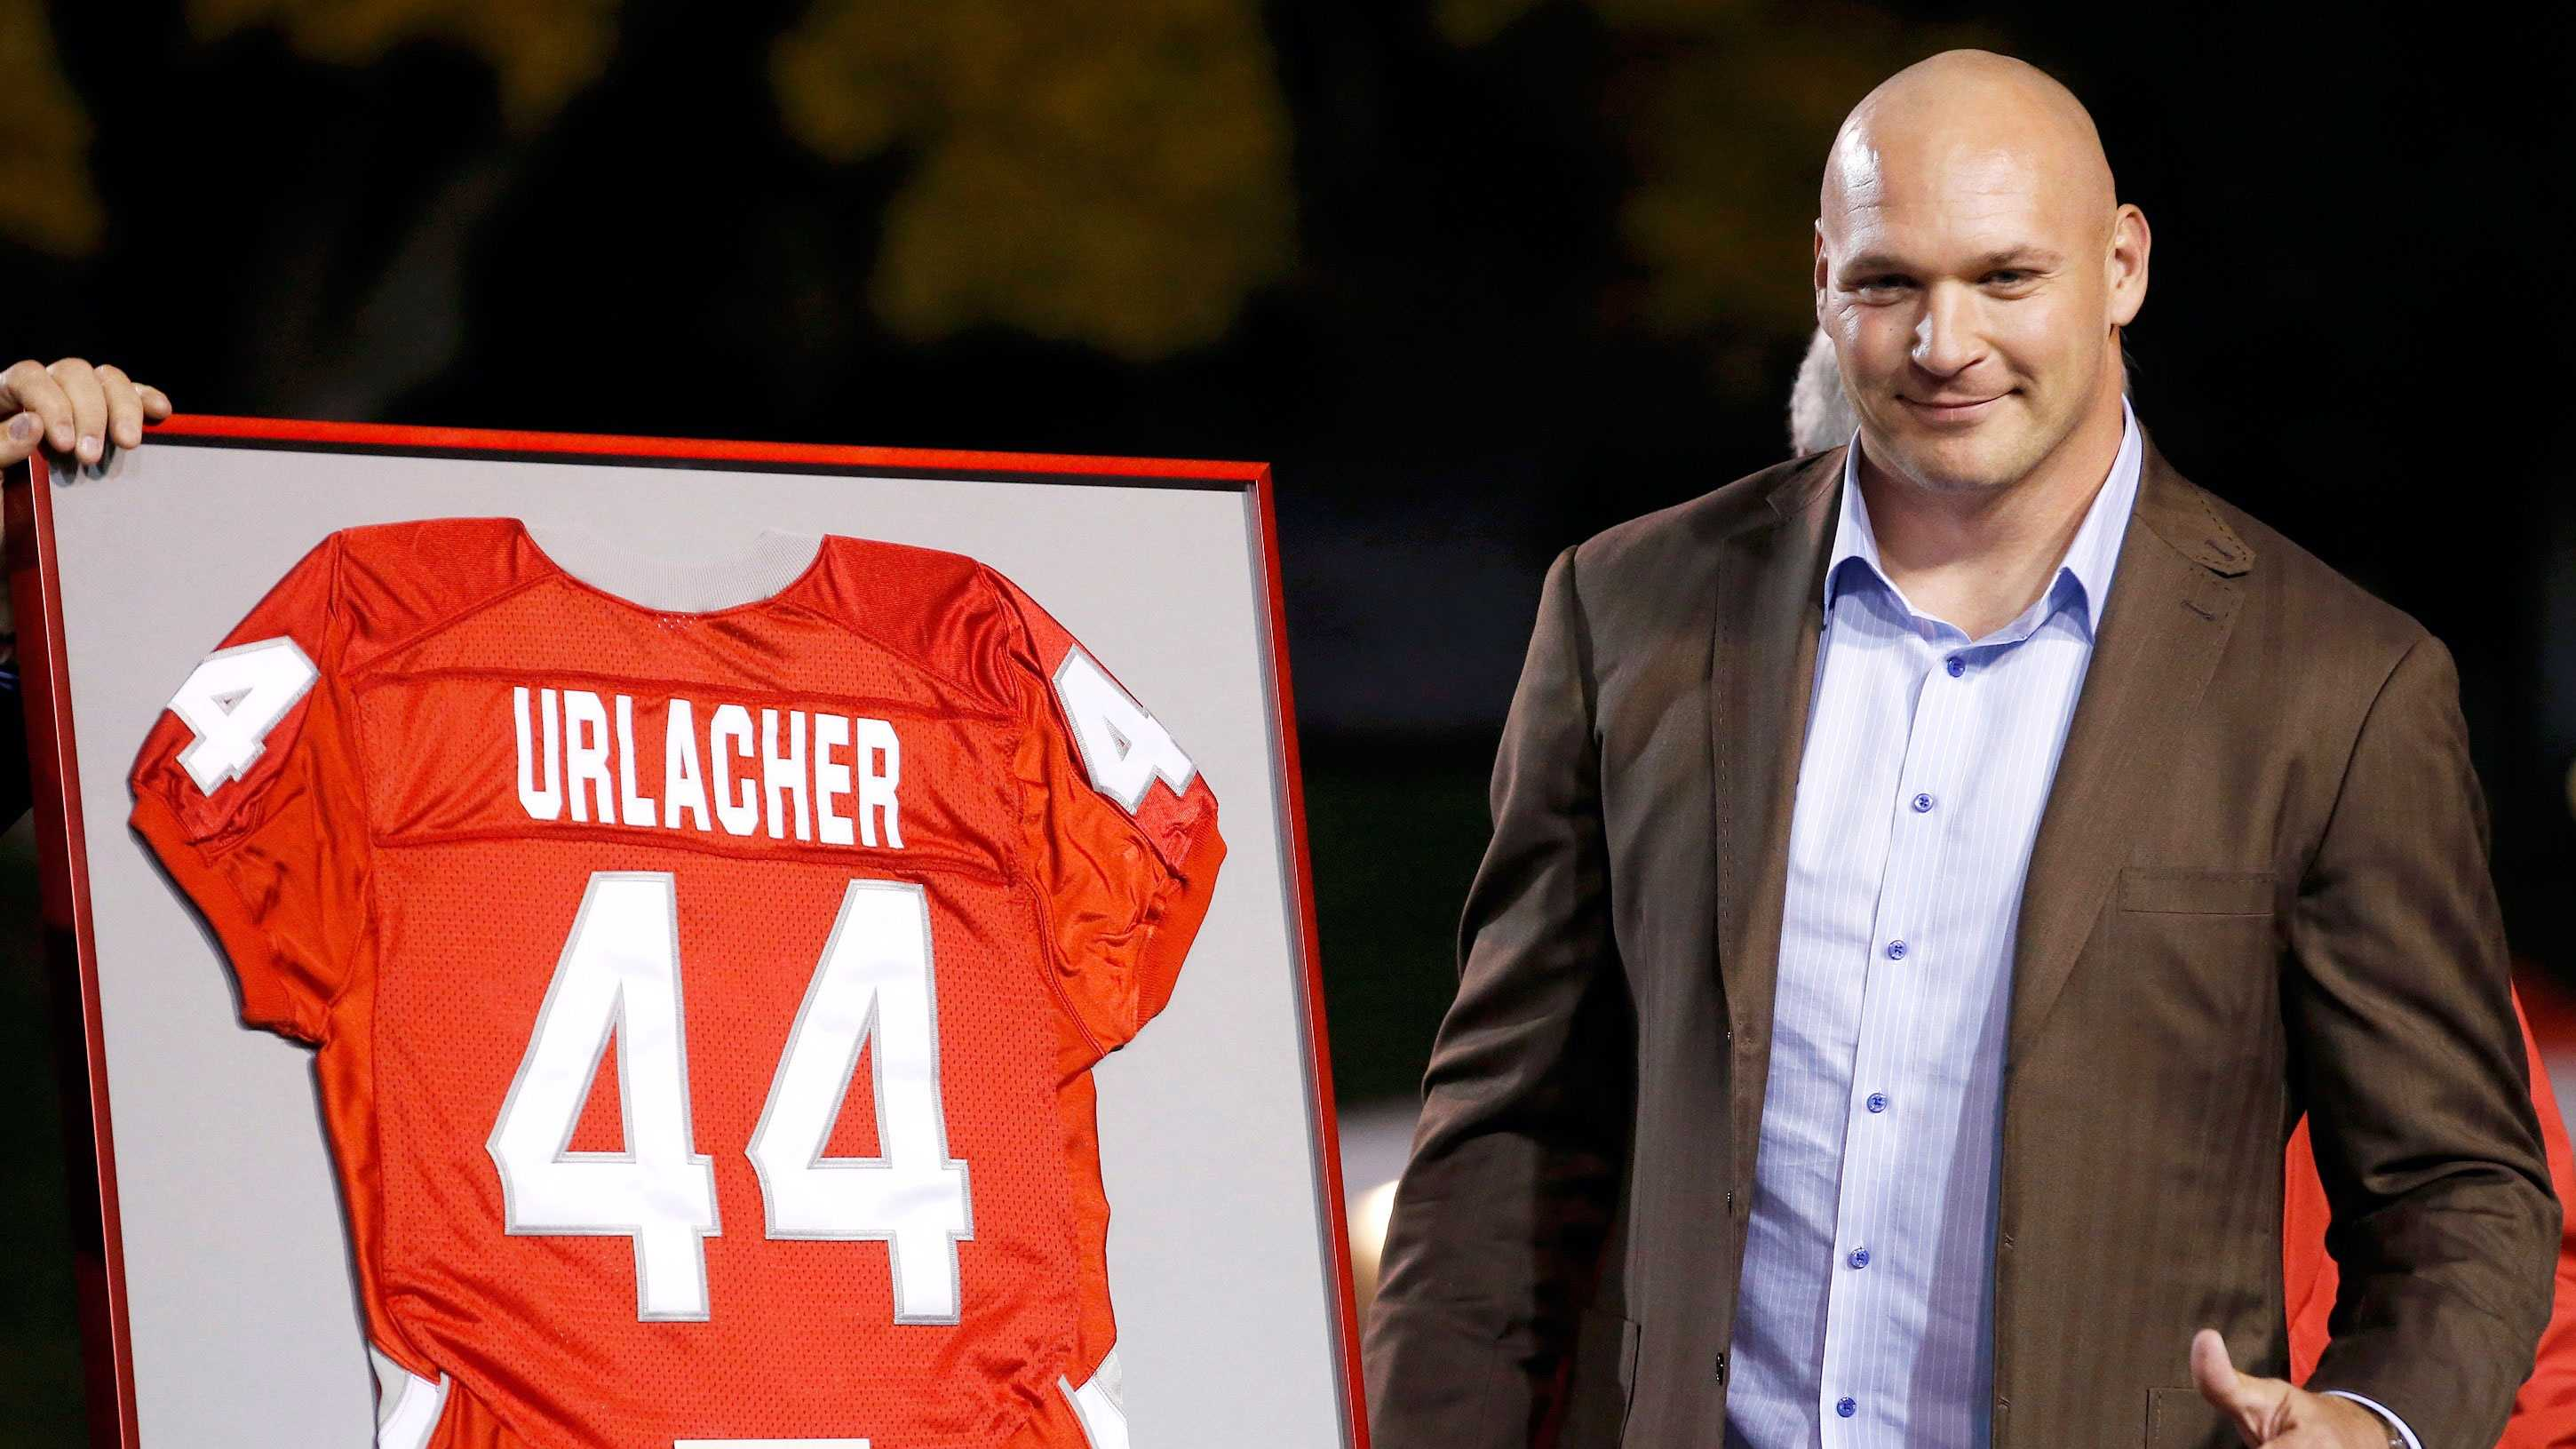 Former New Mexico and Chicago Bears football player Brian Urlacher gives a thumbs up as his jersey number is retired during a halftime ceremony at an NCAA college football game against the Air Force on Friday, Nov. 8, 2013, in Albuquerque, N.M. (AP Photo/Ross D. Franklin)